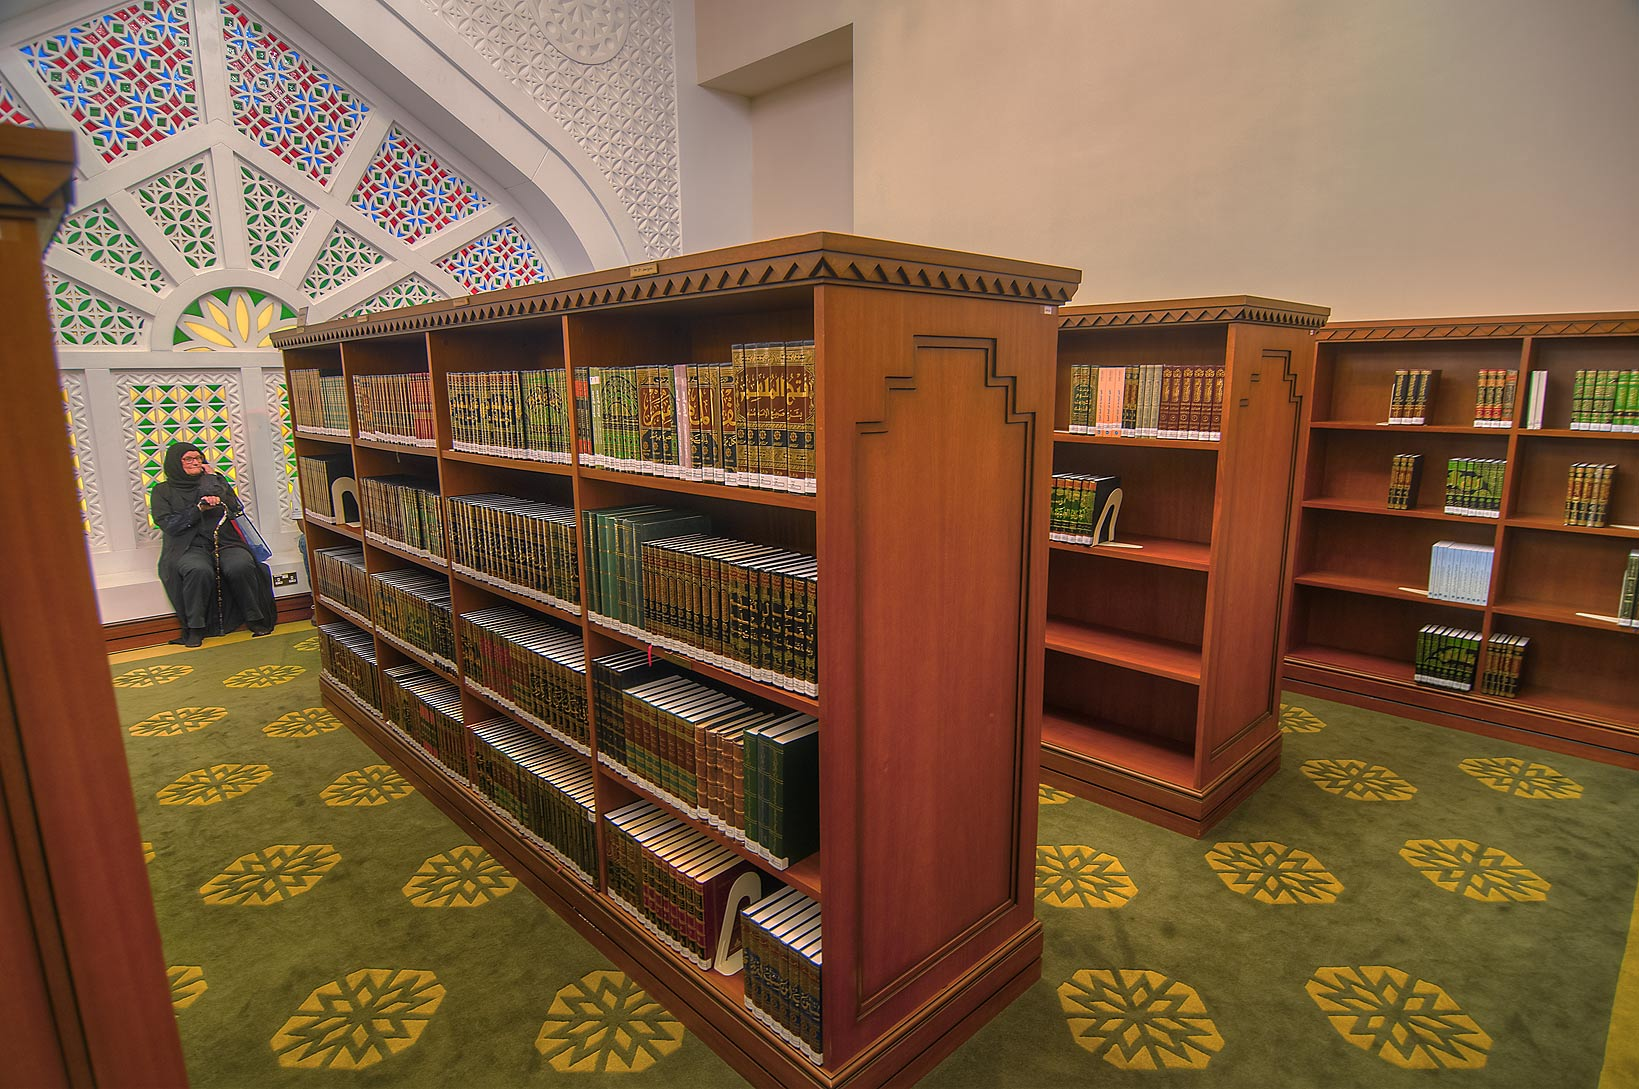 Bookshelves filled by Quran books in library of...Ibn Abdul Wahhab Mosque). Doha, Qatar